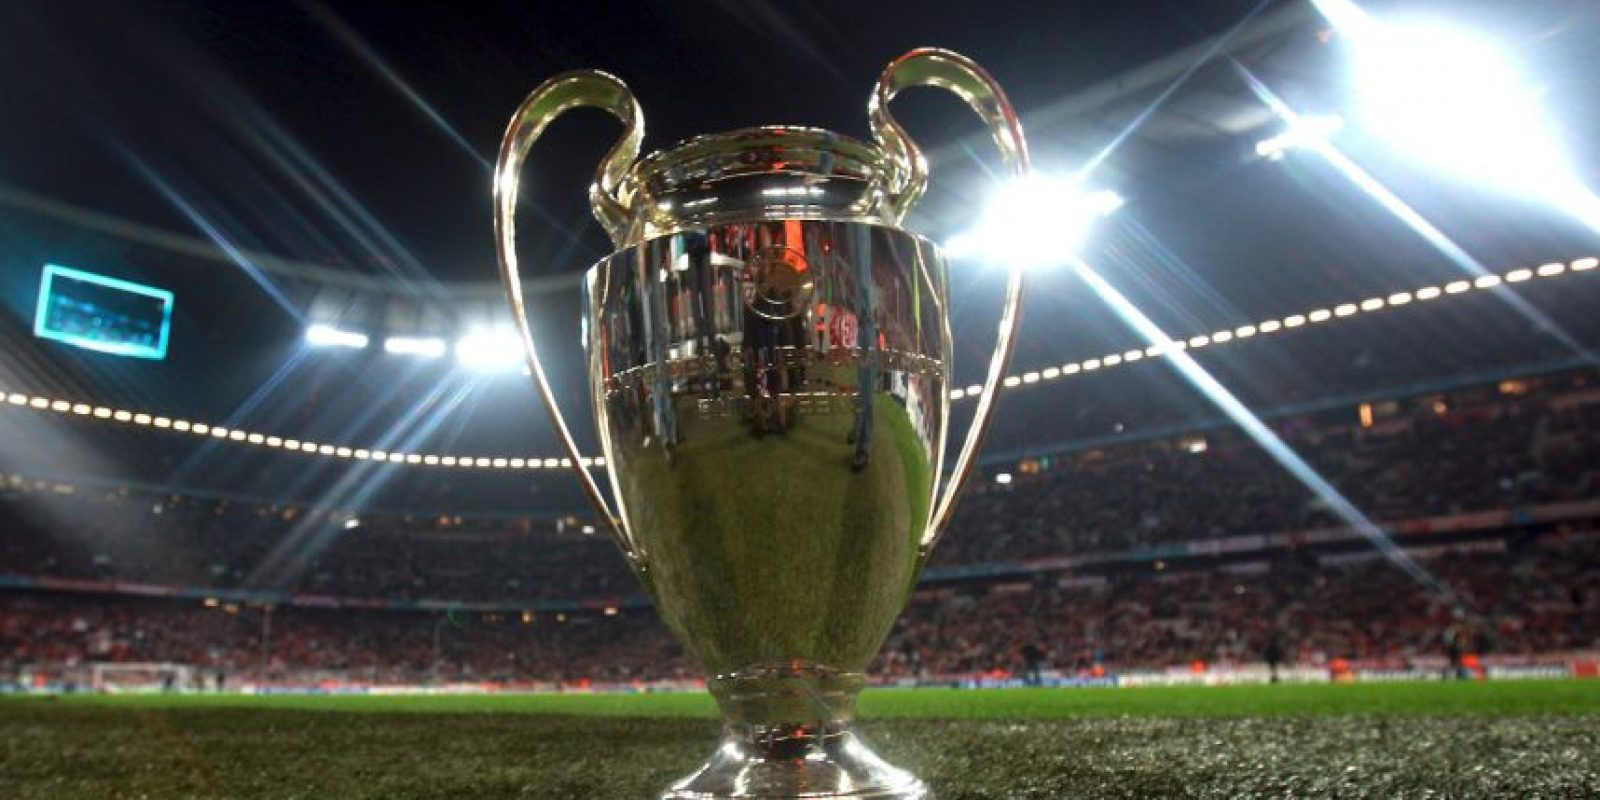 Continúa la primera jornada de la Champions League. Foto: Getty Images